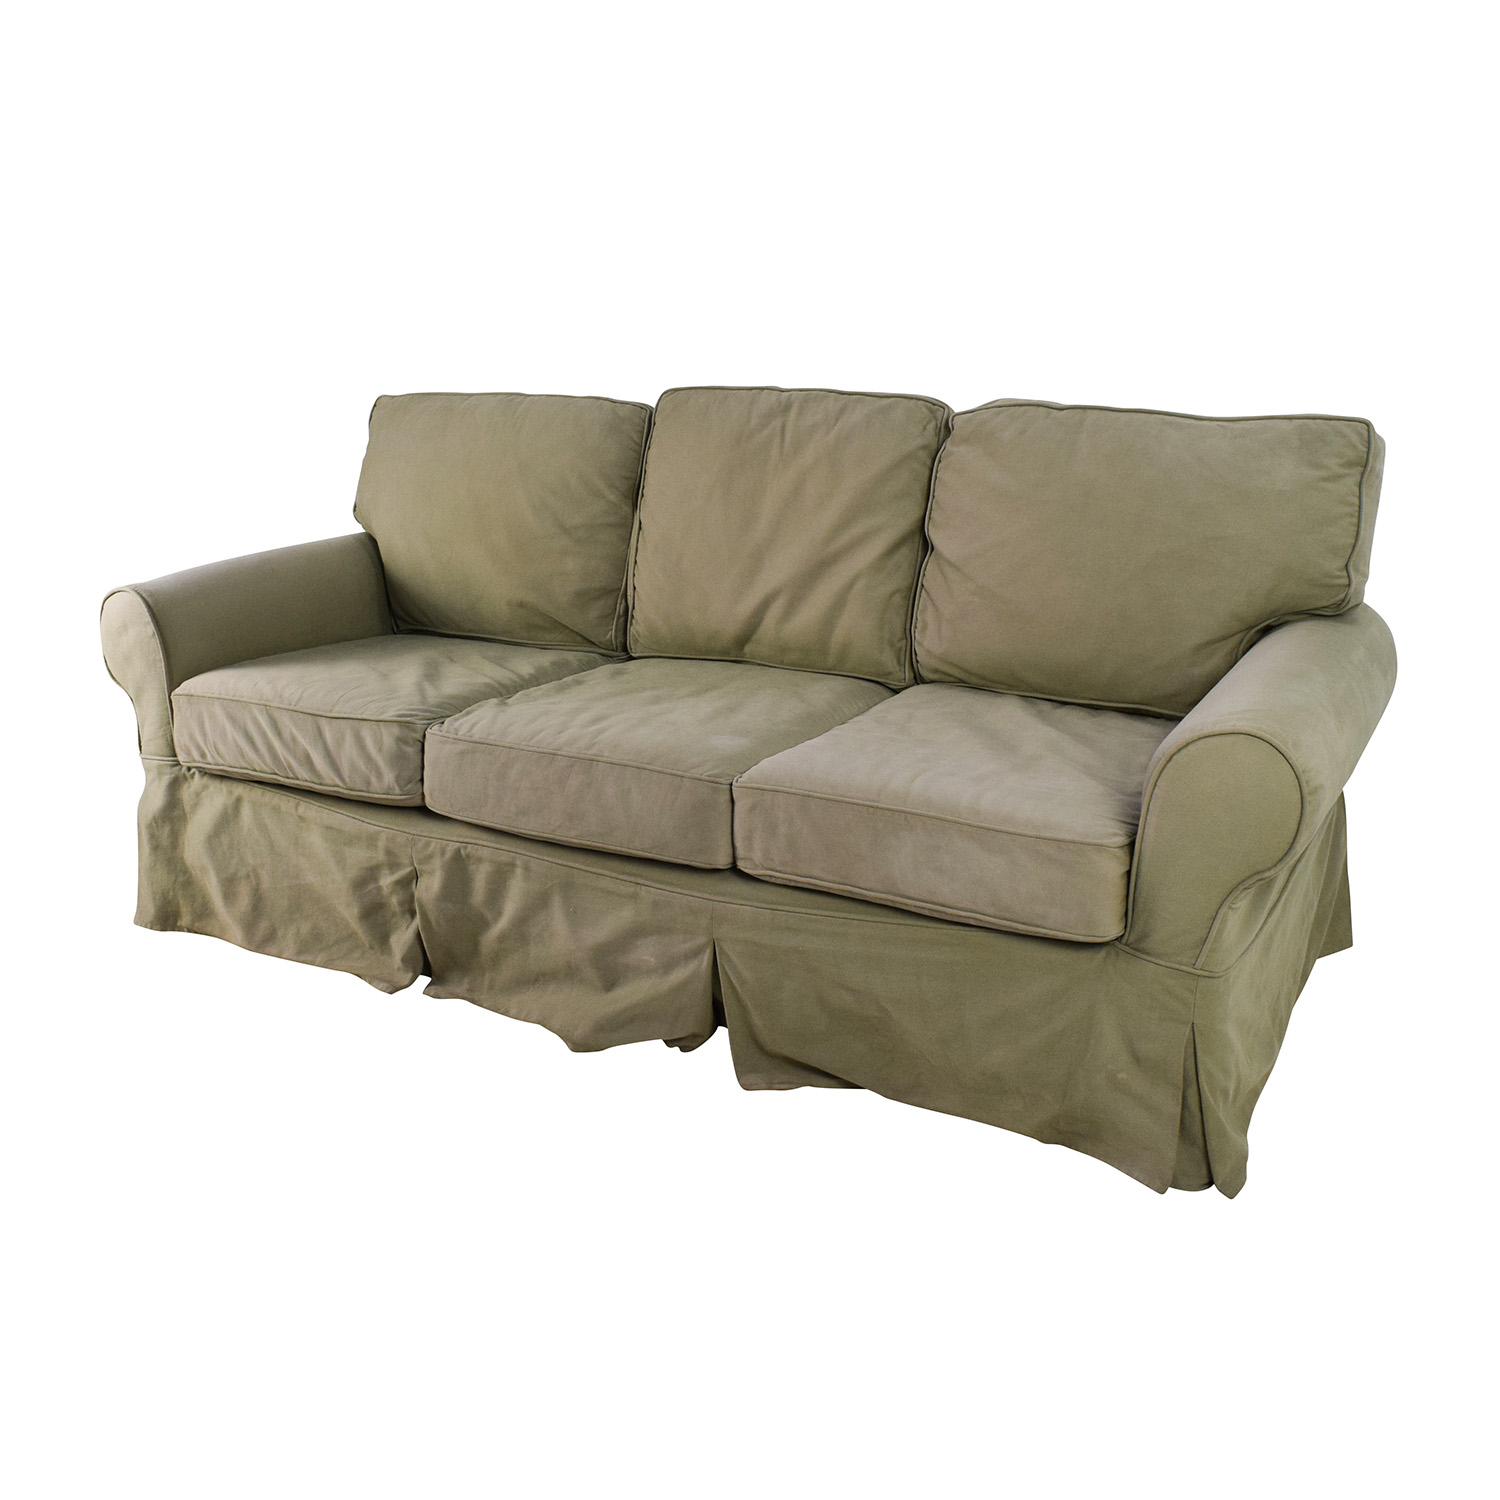 Pottery Barn Pottery Barn Sage Couch / Sofas